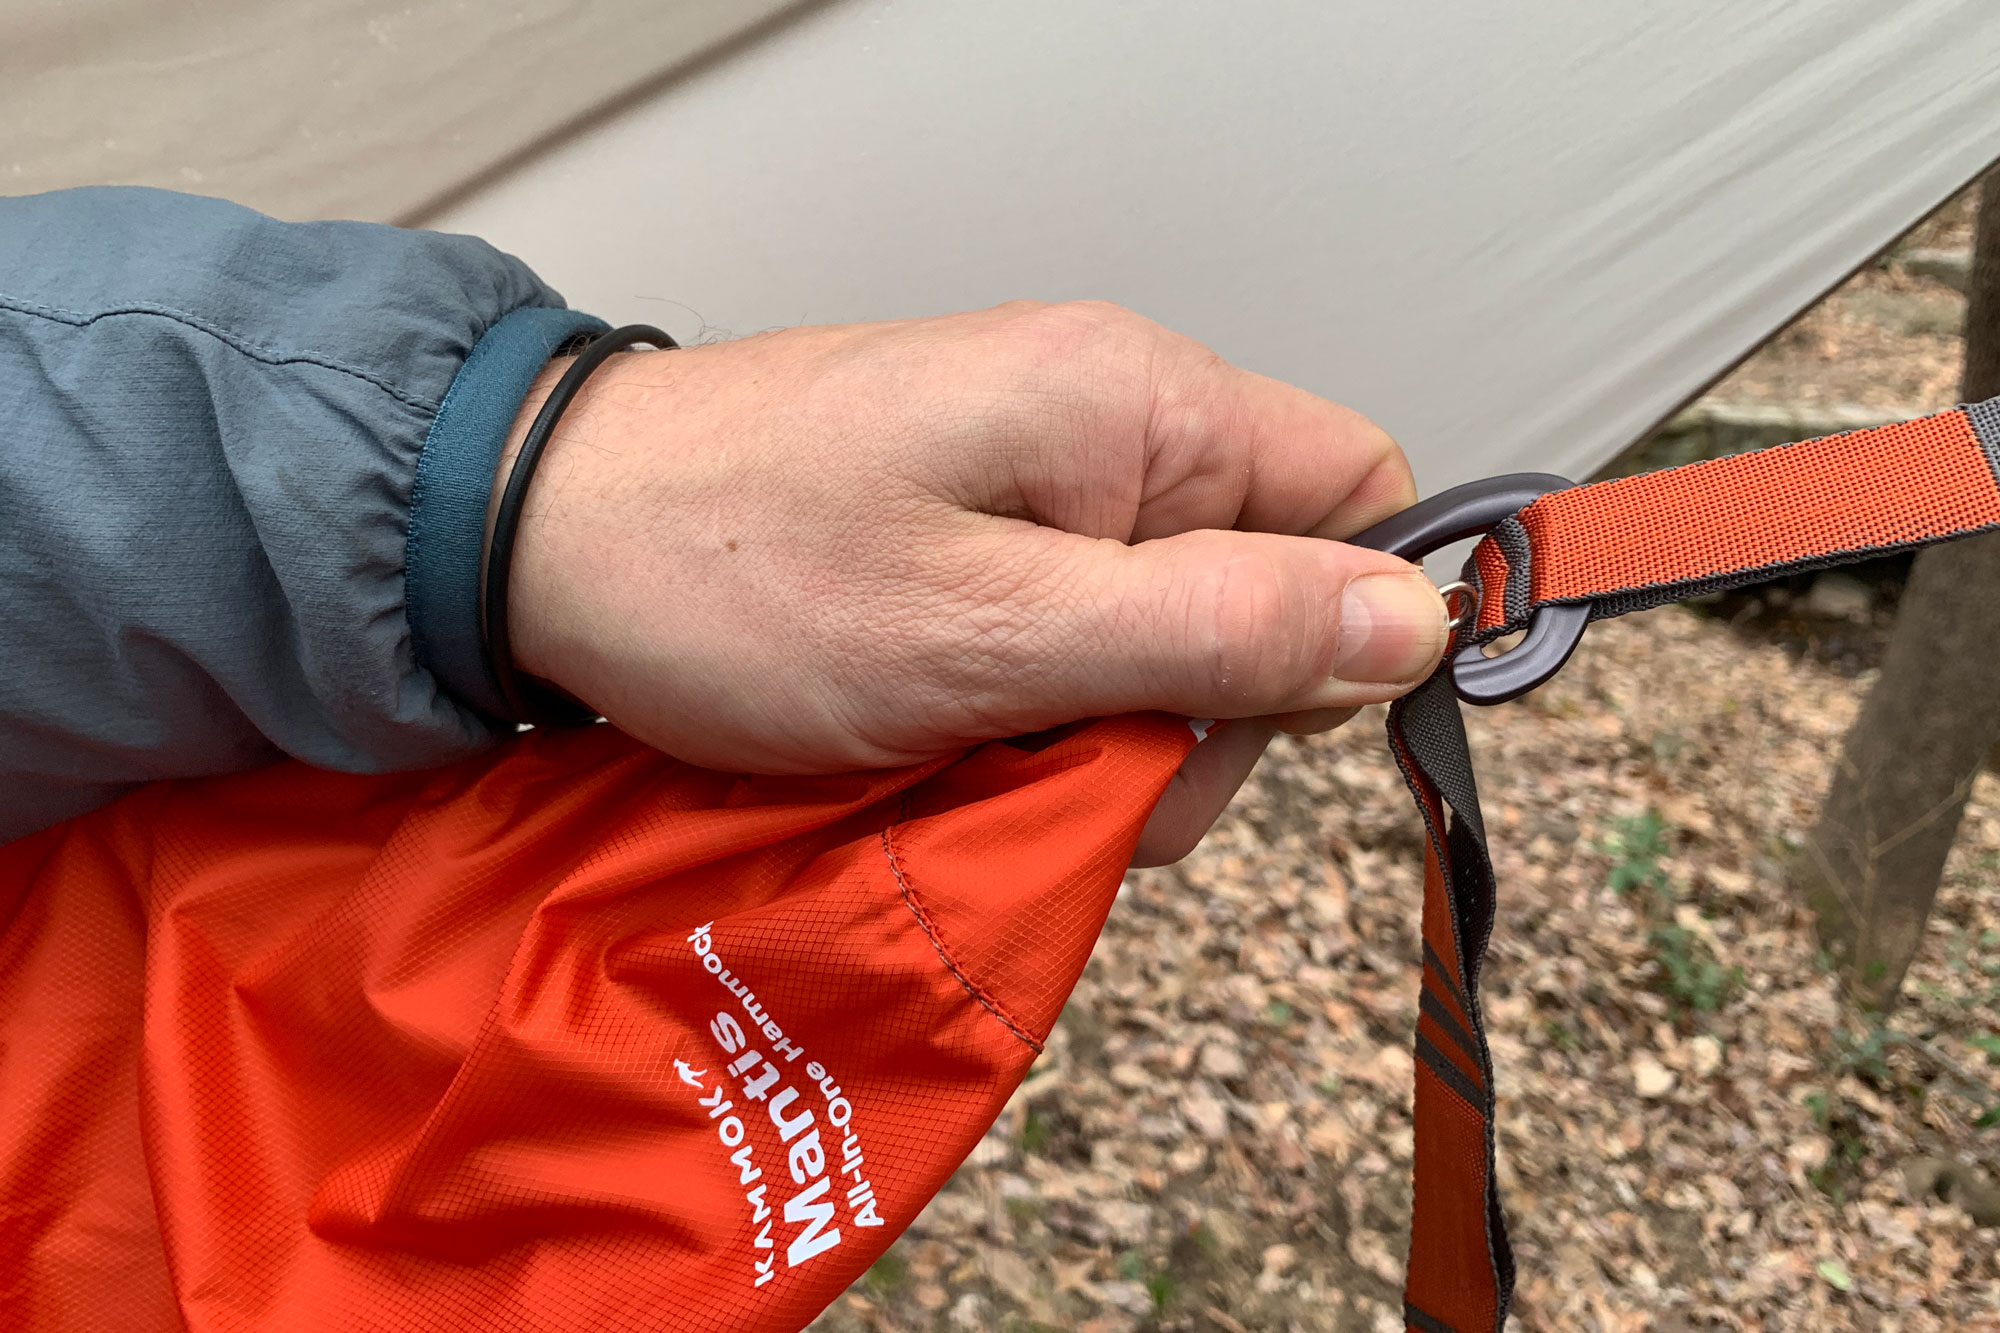 Kammock Mantis all-in-one hammock system carabiner attachment